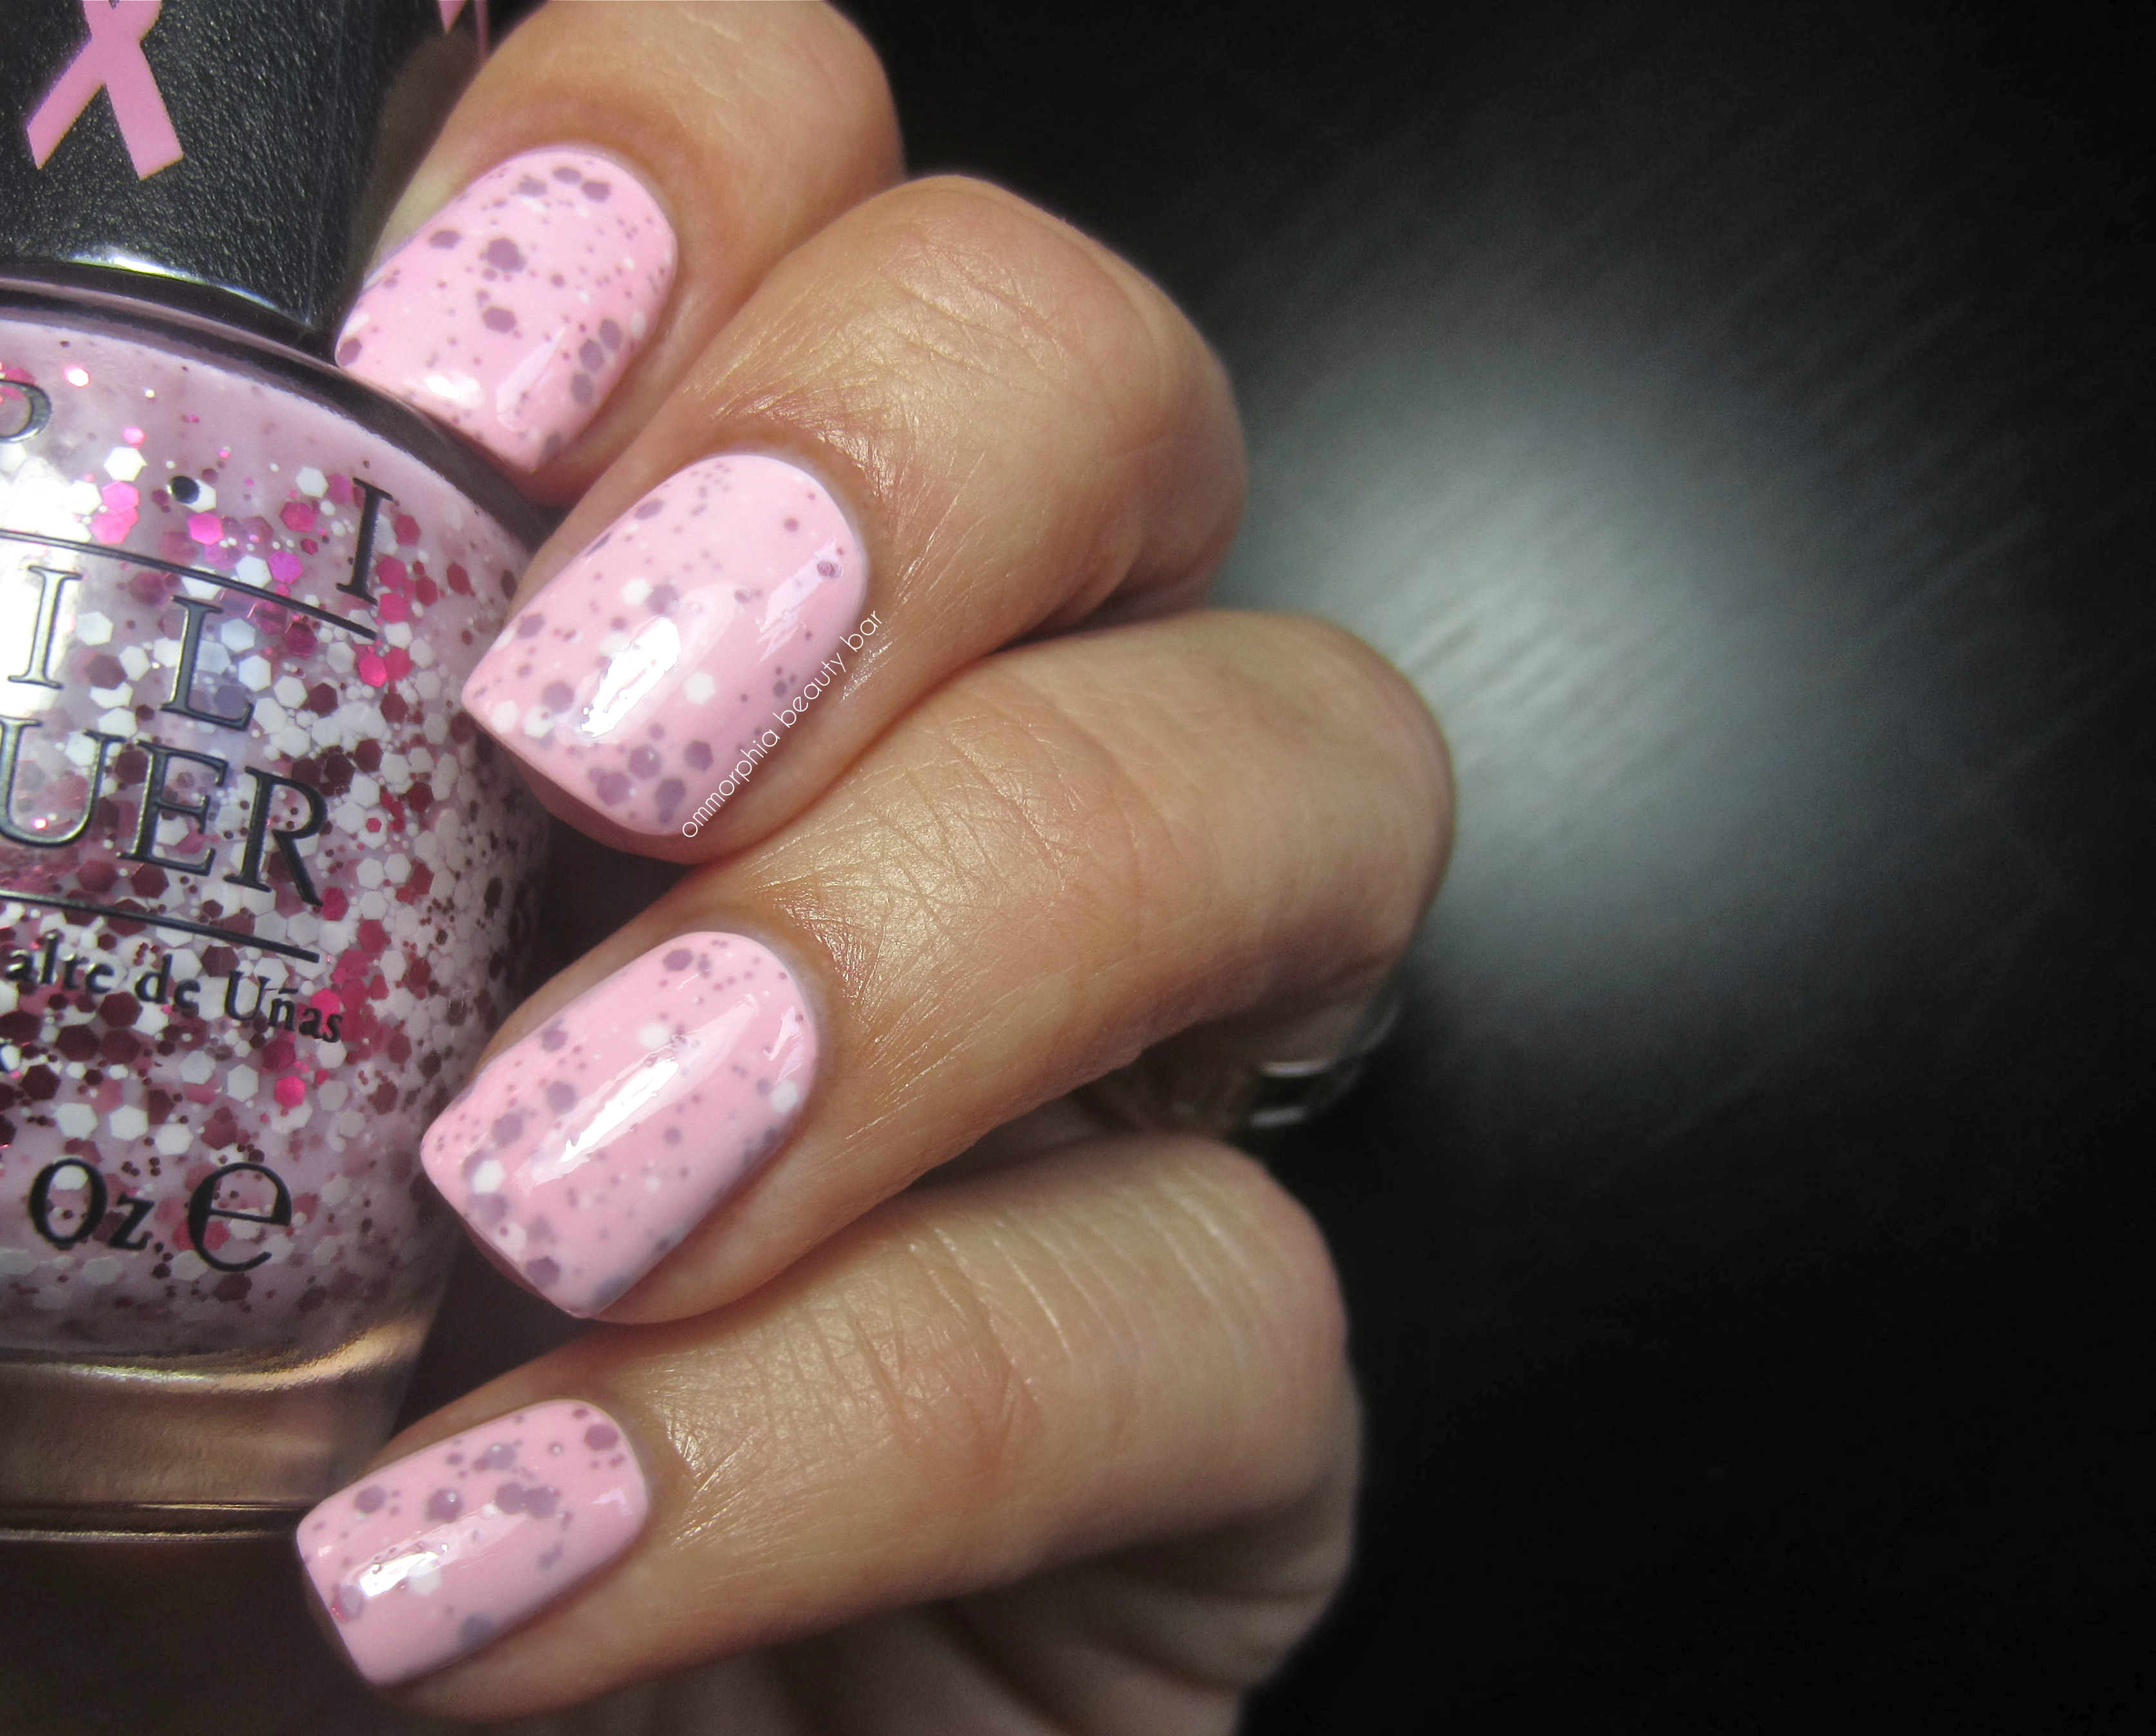 OPI Pink of Hearts duo & Funny Bunny